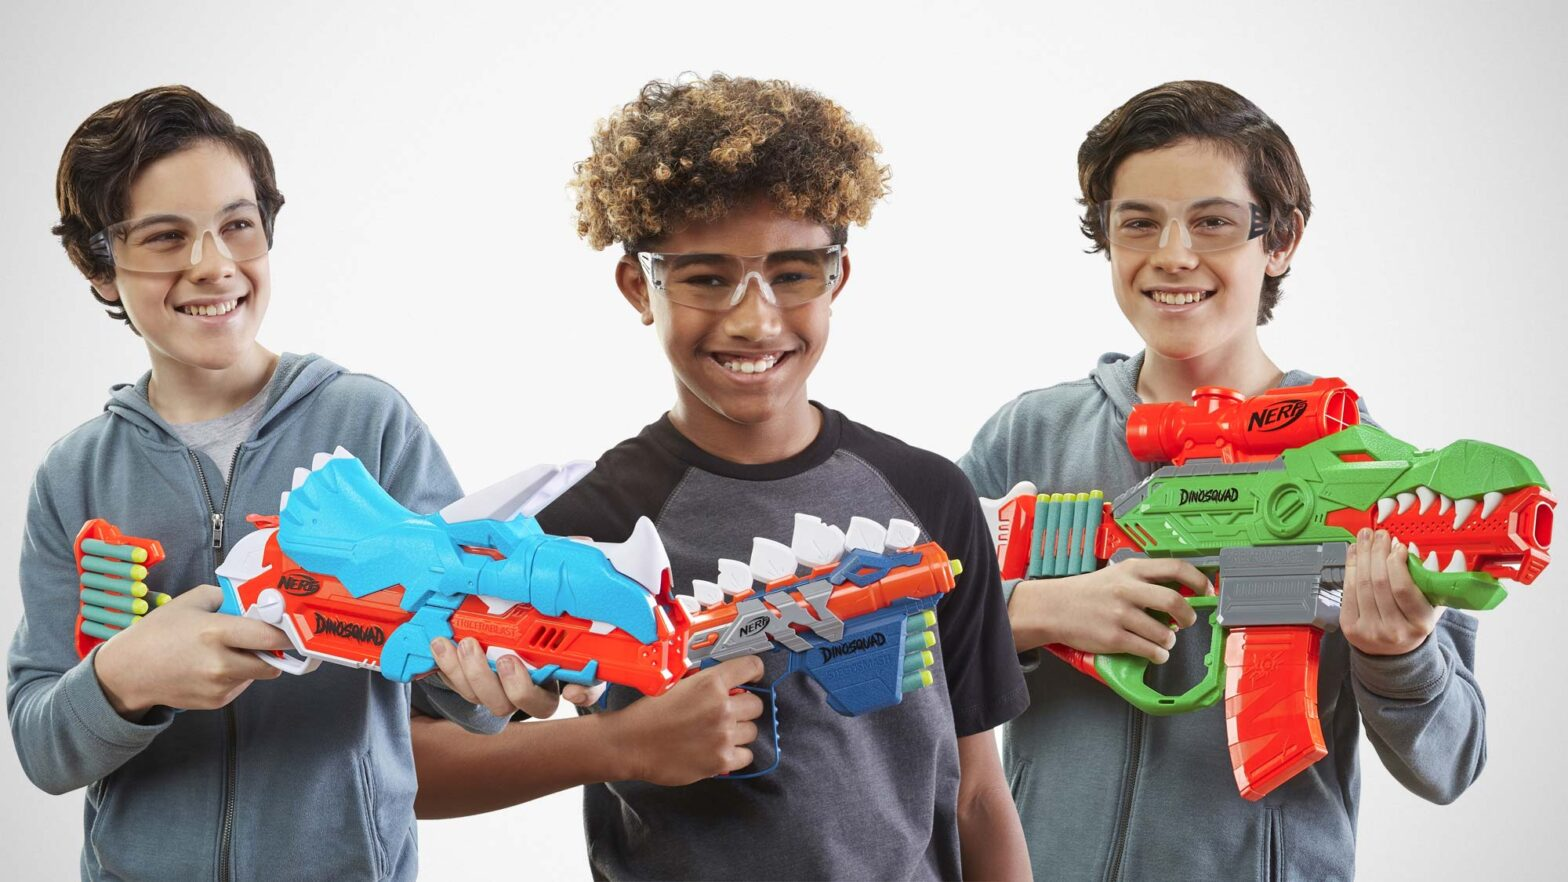 NERF DinoSquad Dart and Water Blasters